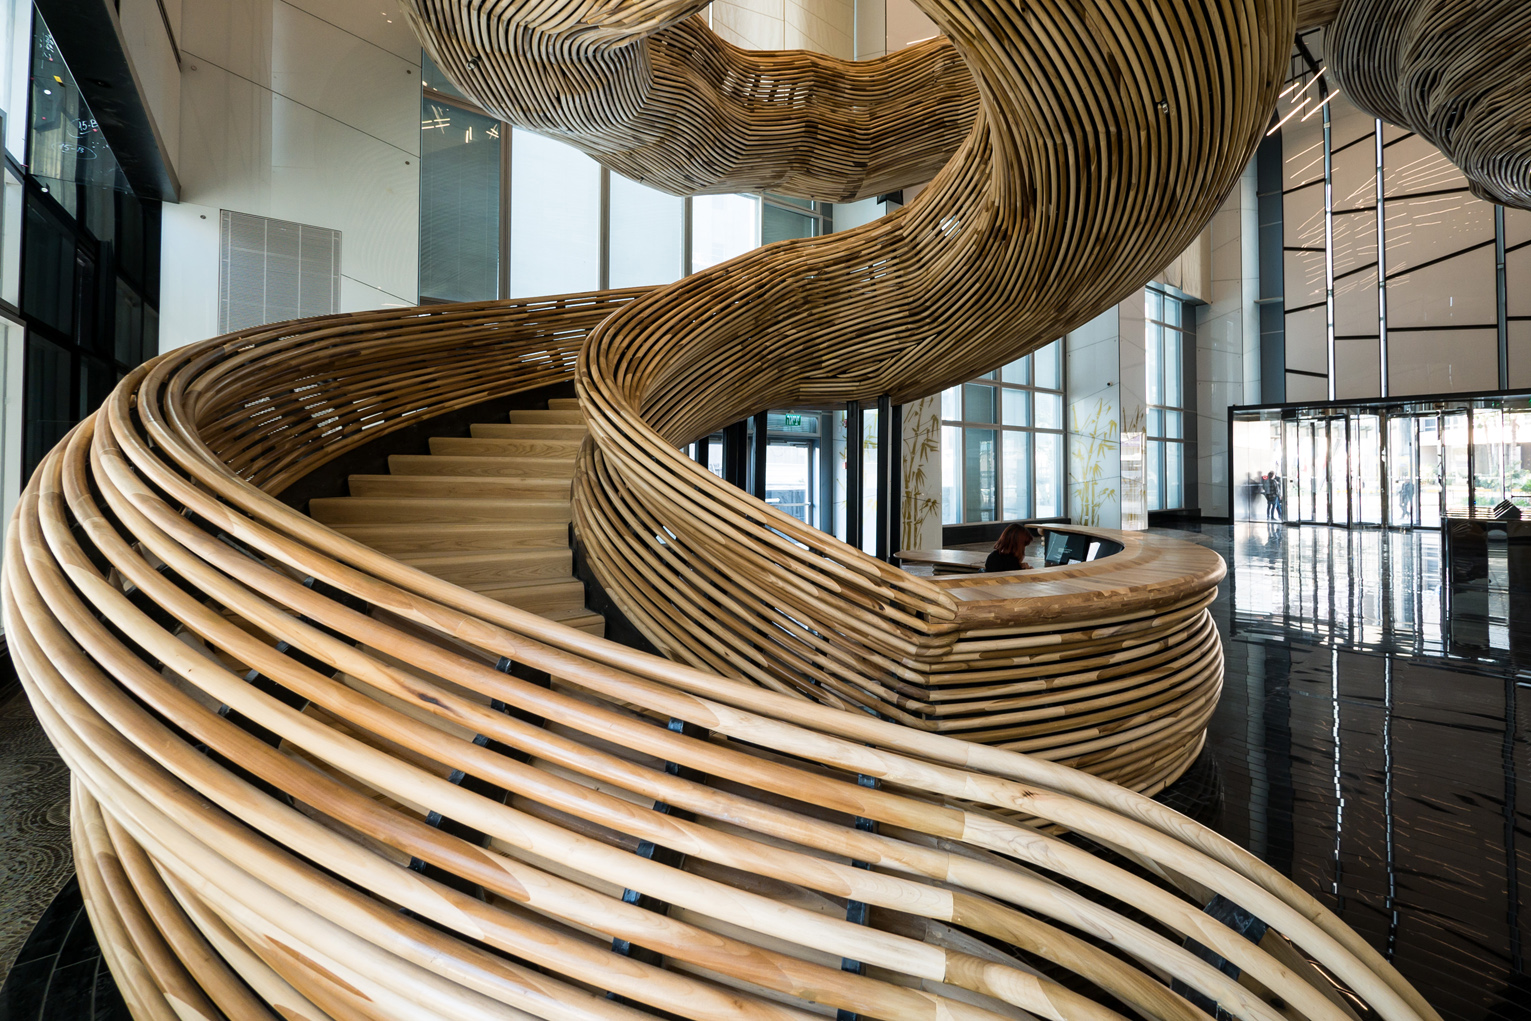 3b. Photography by ITAY SIKOLSKI - The reception desk was conceived as the starting point for the spiraling wooden sculpture, completed with the same wooden profiles as the railings